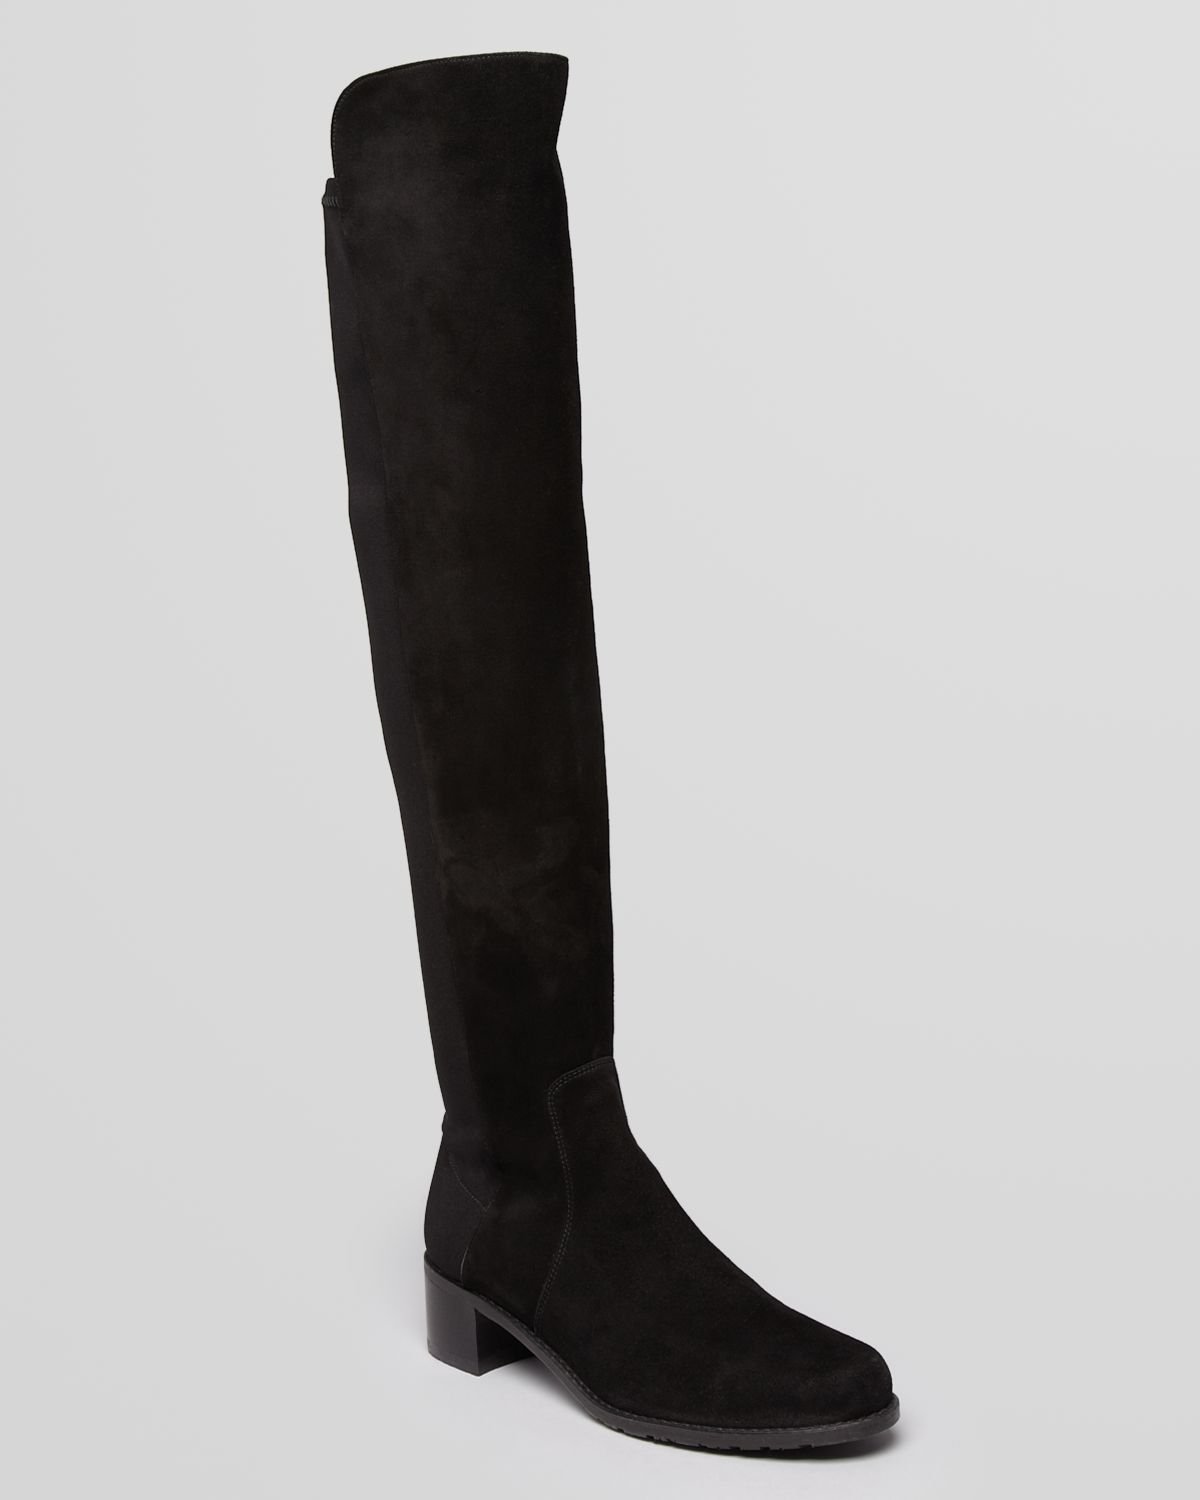 Stuart Weitzman Over The Knee Boots - Reserve 5050 | Bloomingdale's